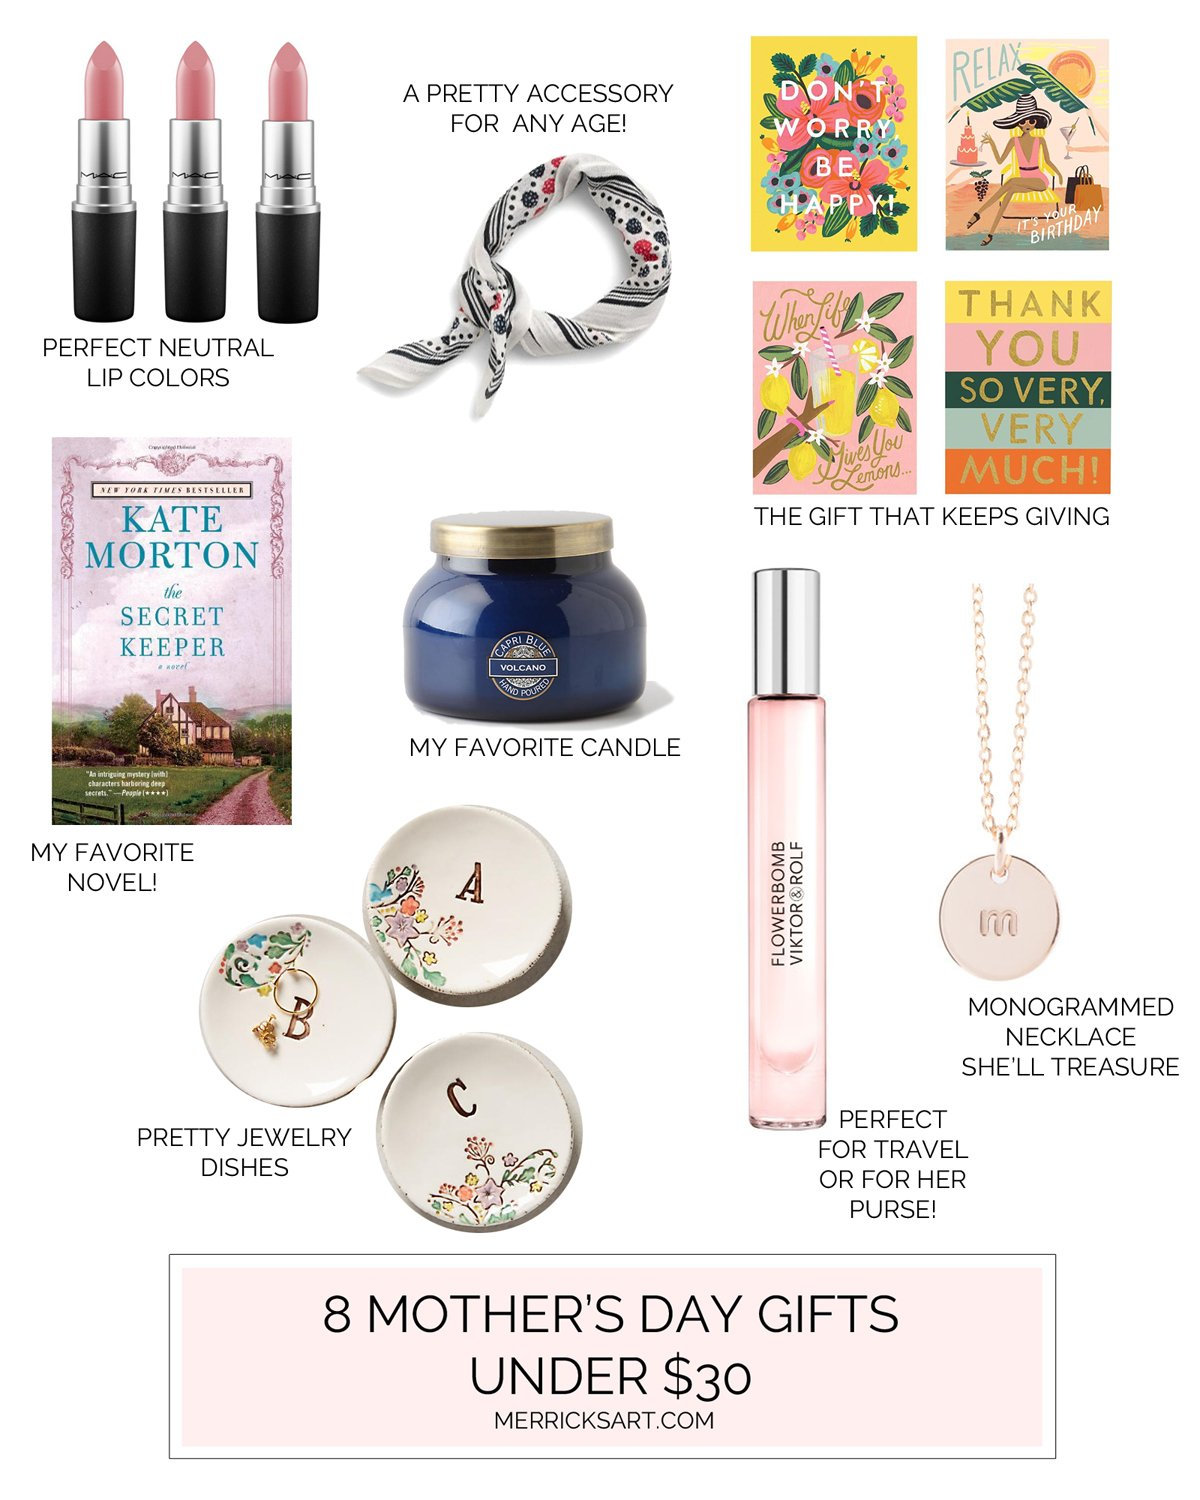 8 mother's day gifts under $30